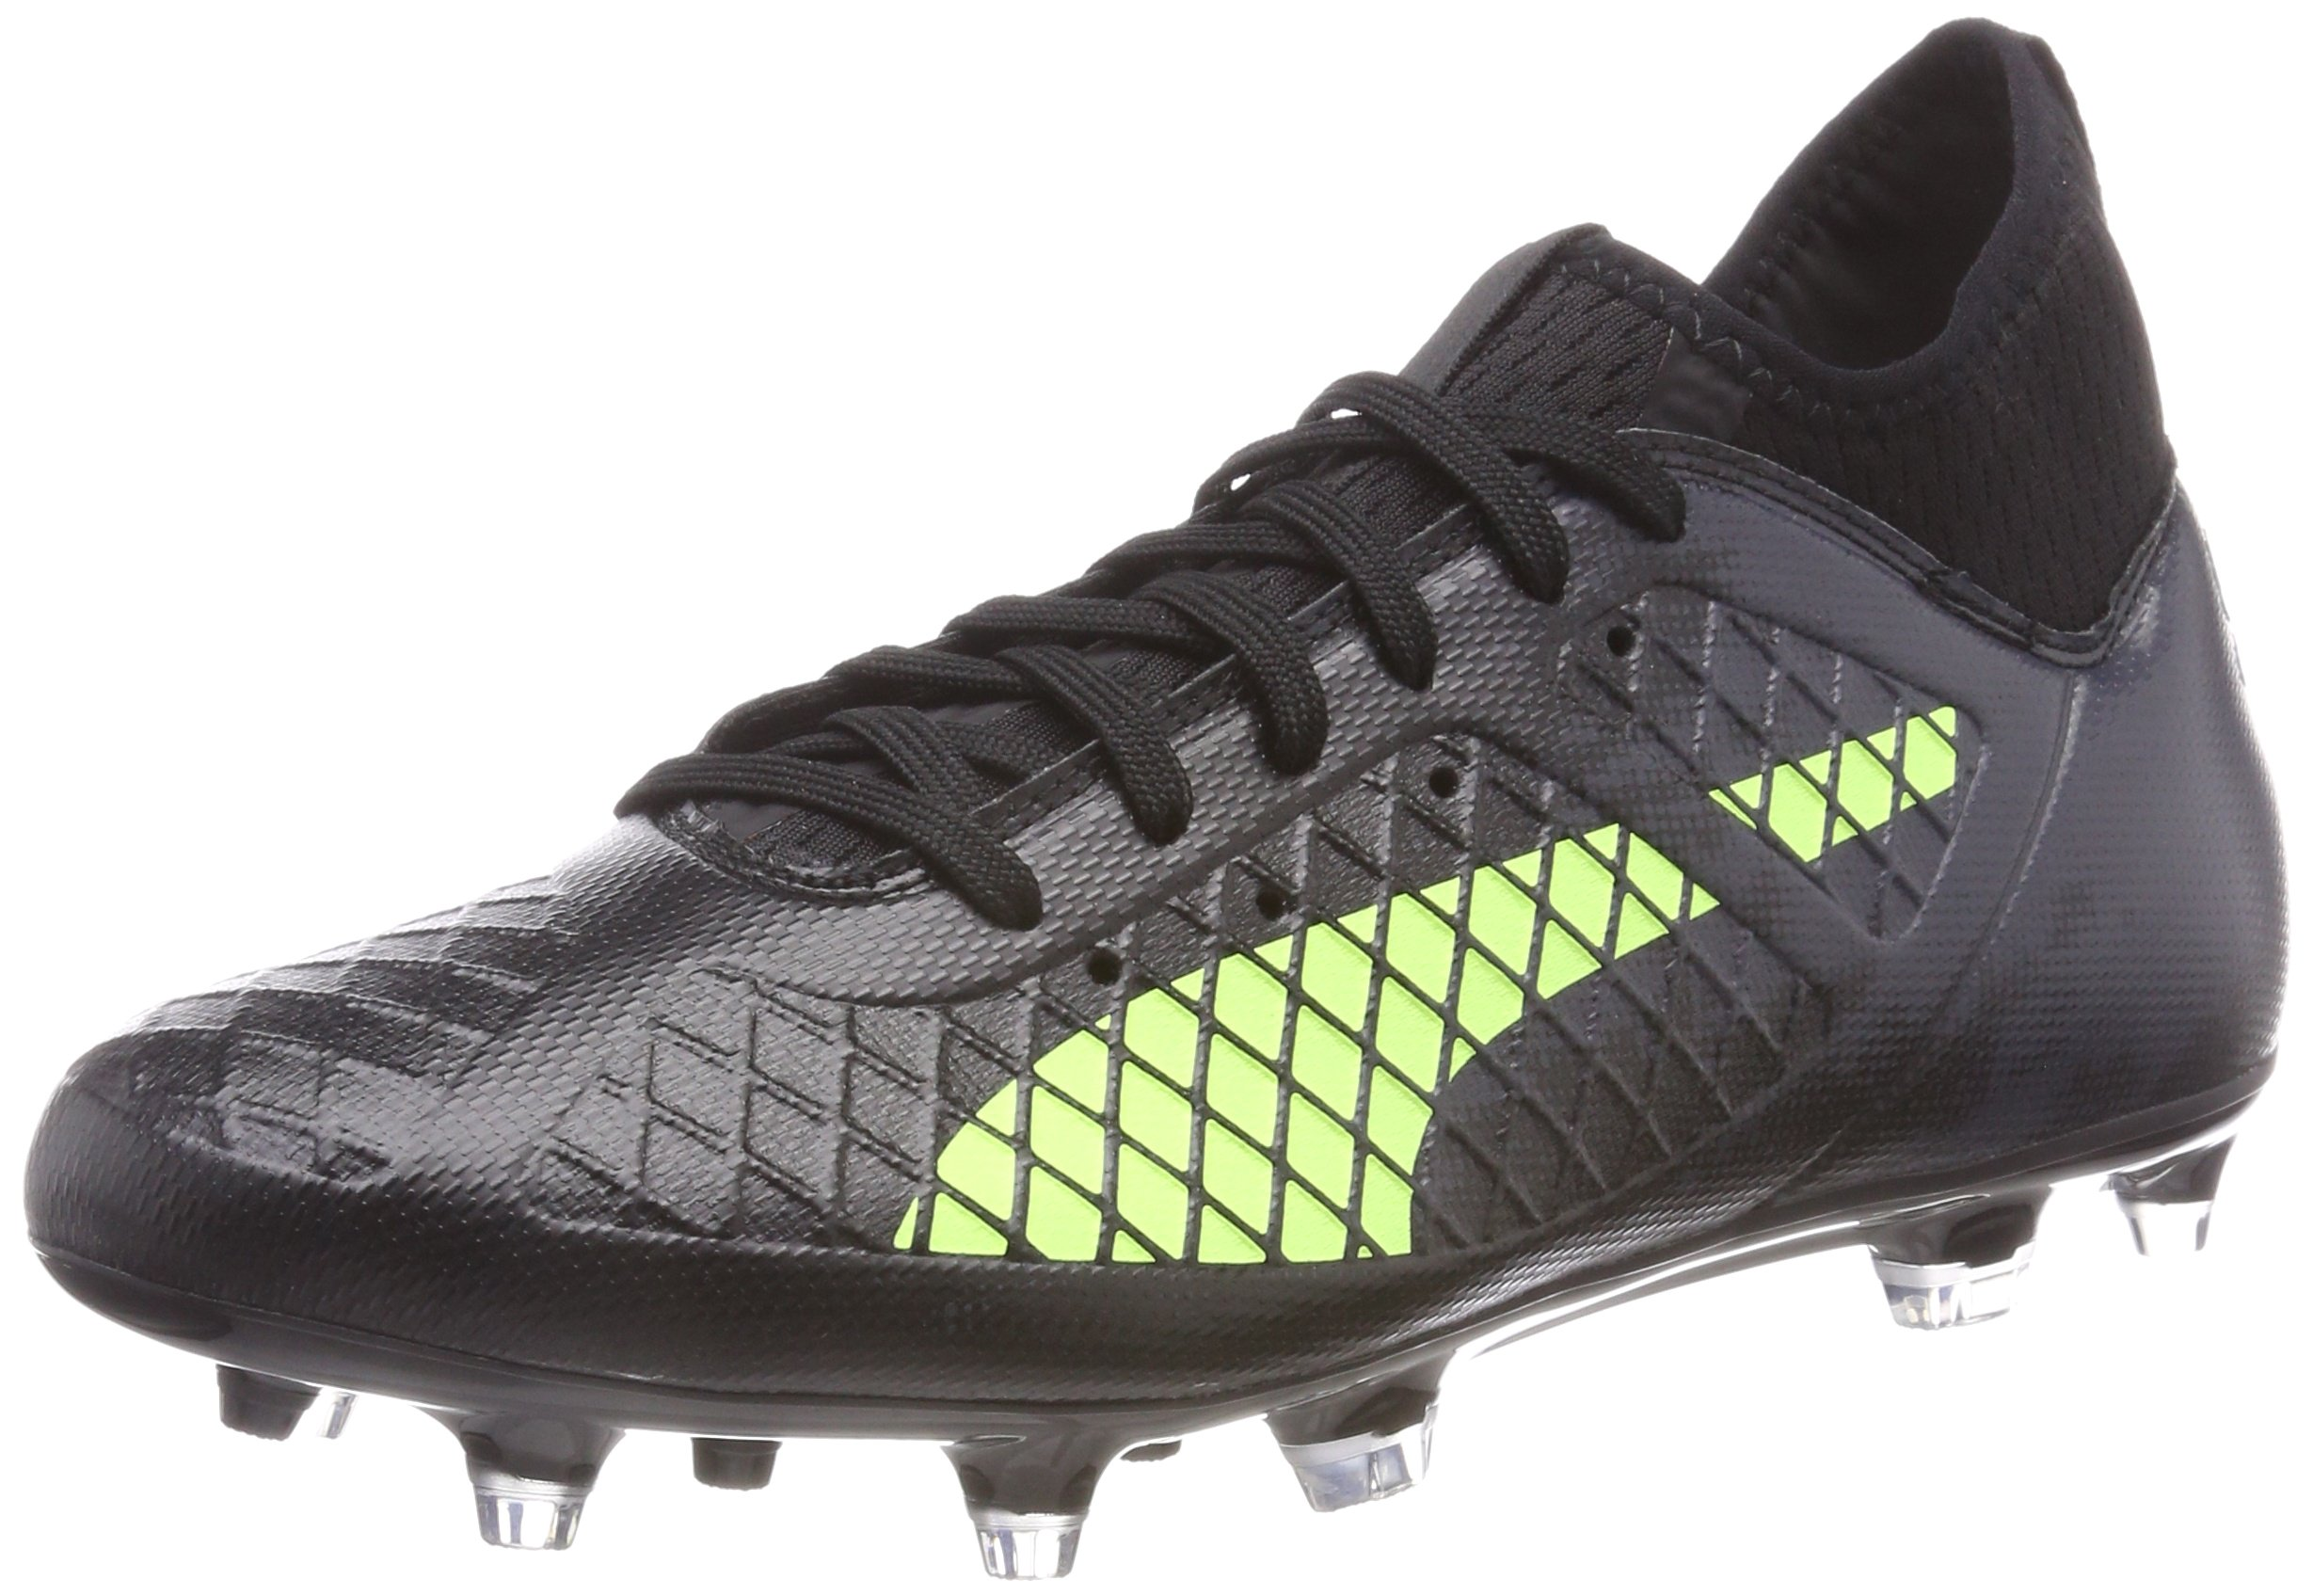 Eu 18 Yellow 3 De agChaussures Black Puma HommeNoir Future fizzy Fg asphalt46 Football OnP80wk